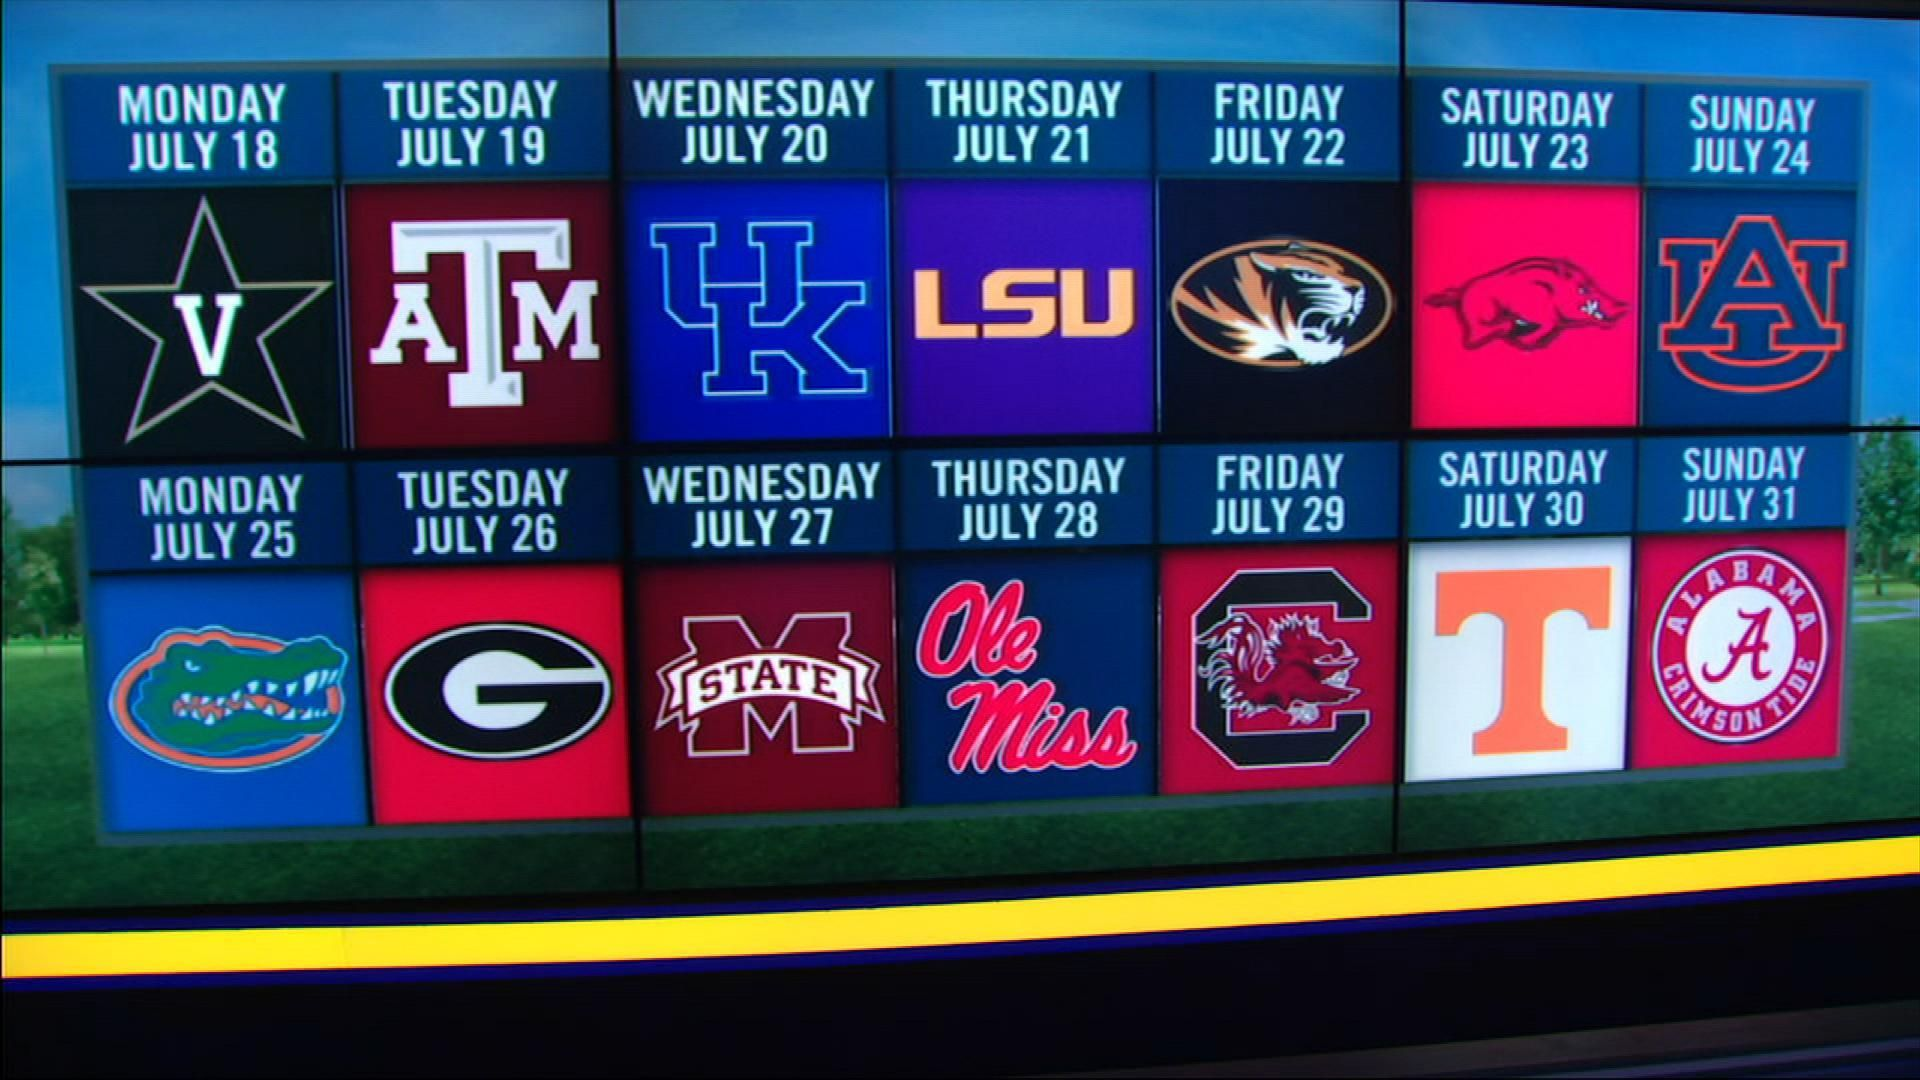 Schools take control of SEC Network programming in July